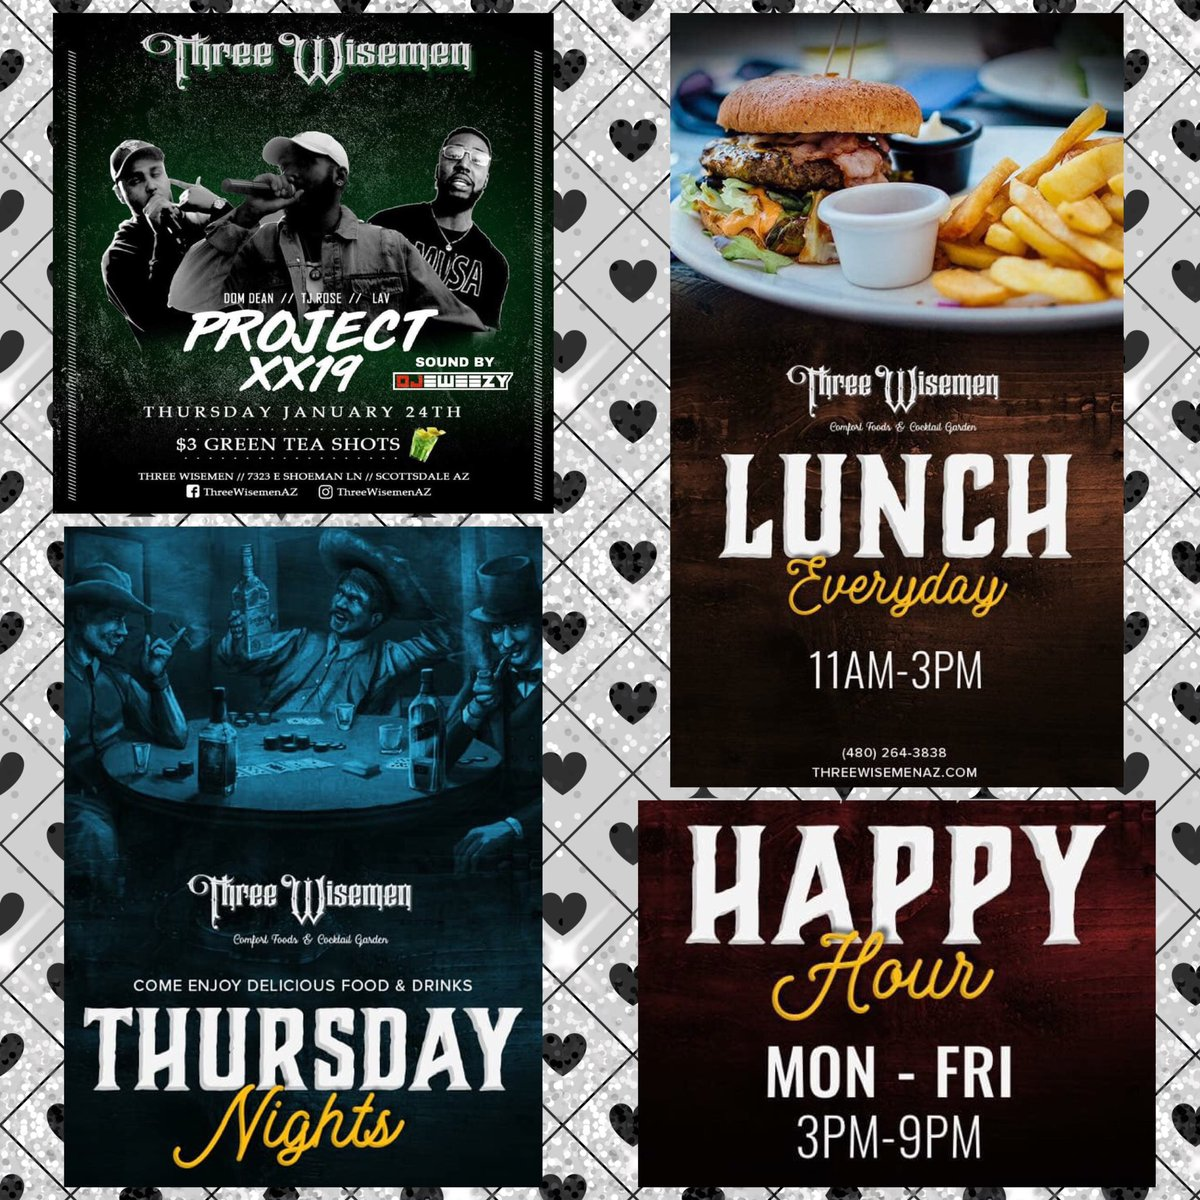 Three Wisemen || Comfort Foods & Cocktail Garden ... Open at 11am for Lunch + Happy Hour 3-9pm & our Thursday Night Party Project XX19 w/ Sounds by DJ EWeezy & $3 Green Tea Shots! 🥗 😋 🍹 🎶 VIP through Ally at 623.225.3986 📲 @ScottsdaleNites @MissAllySpoon